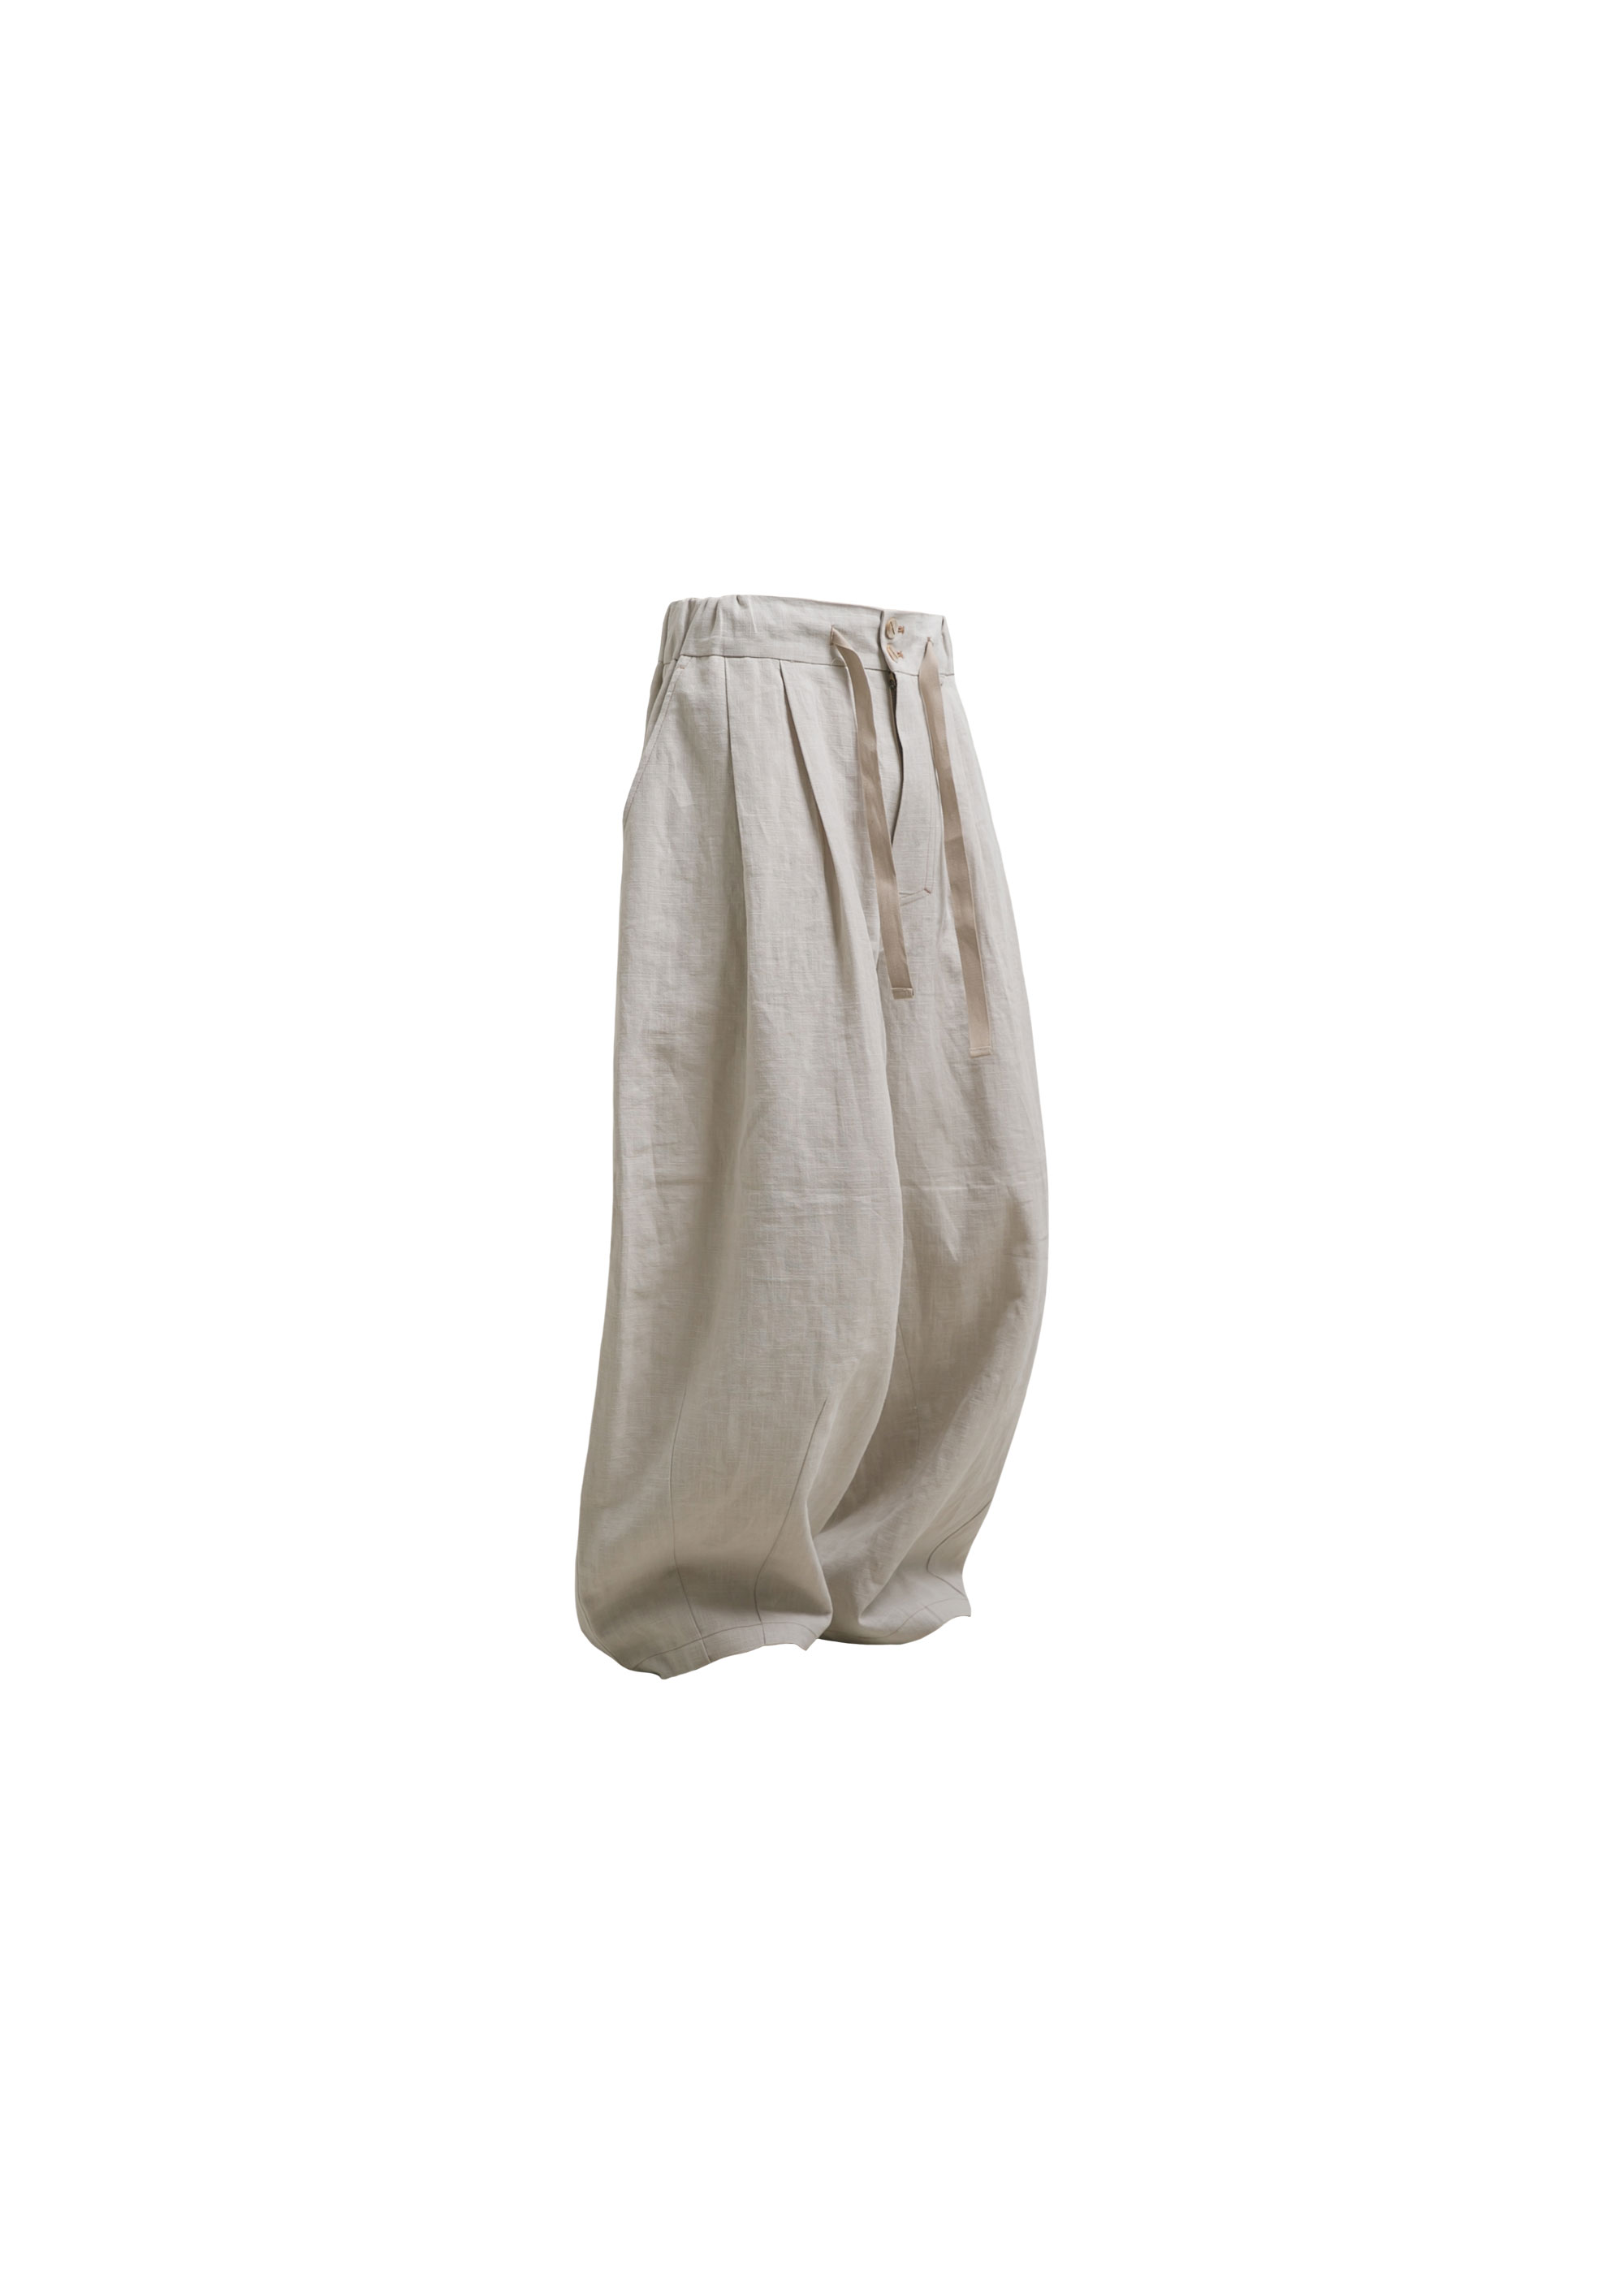 [AG] Linen Balloon pants - Ivory